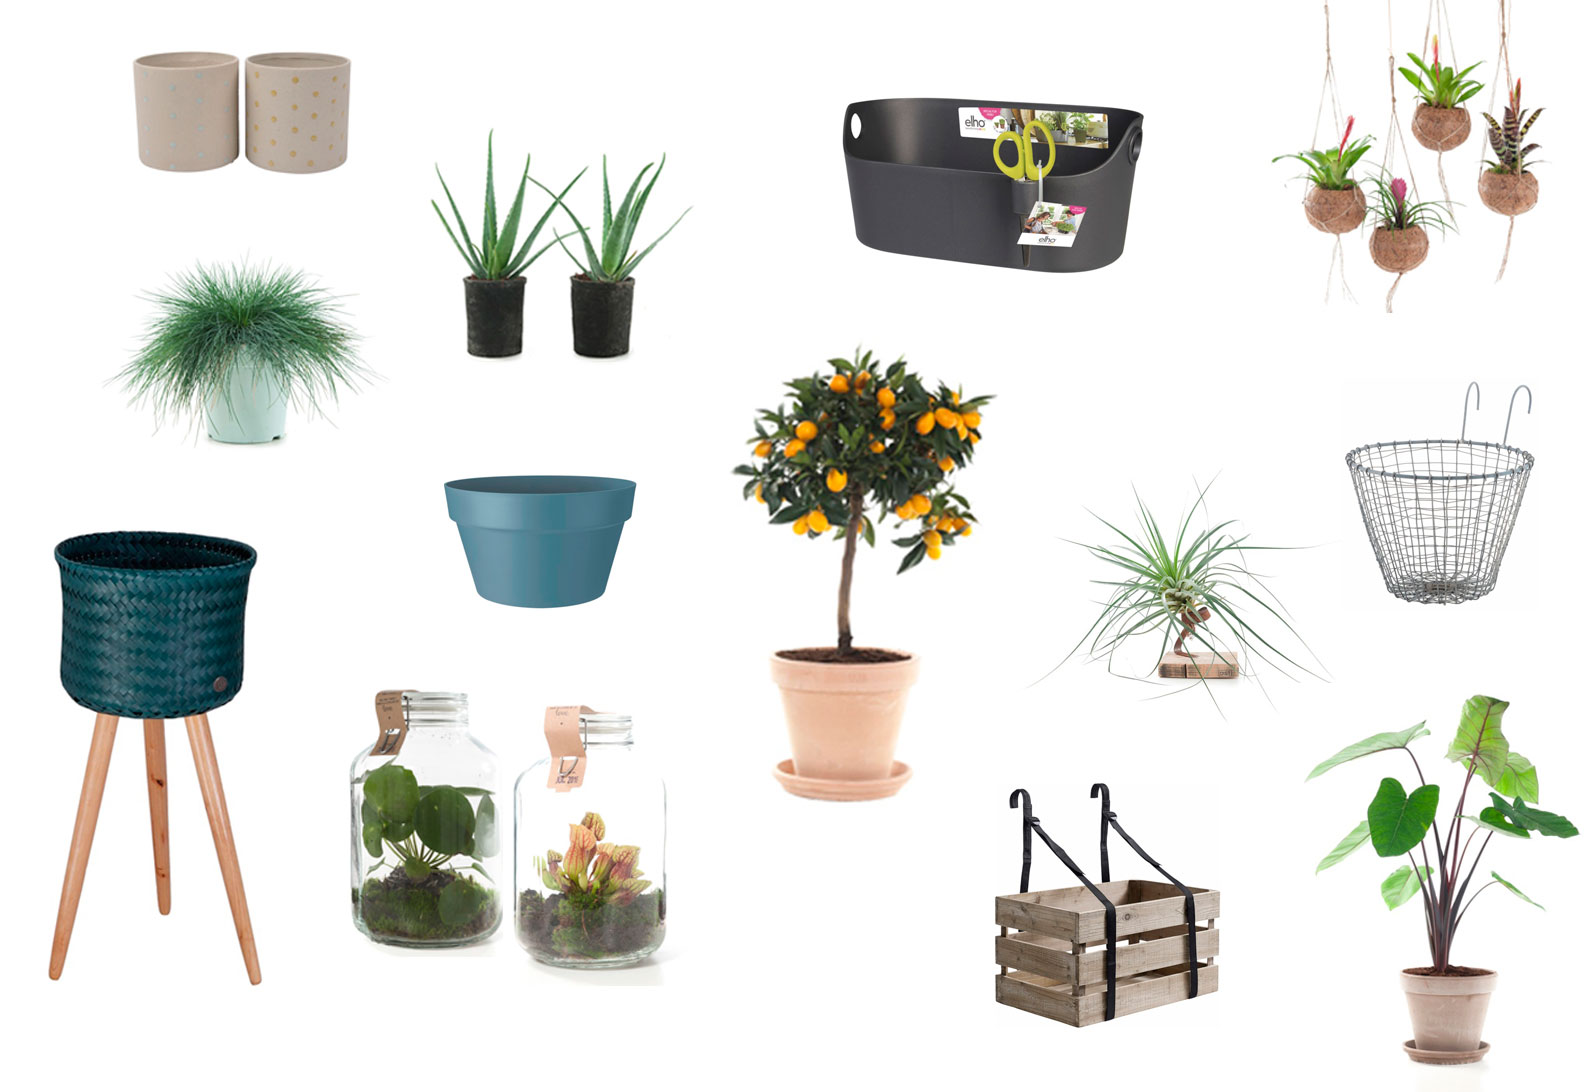 Shopping planten en potten